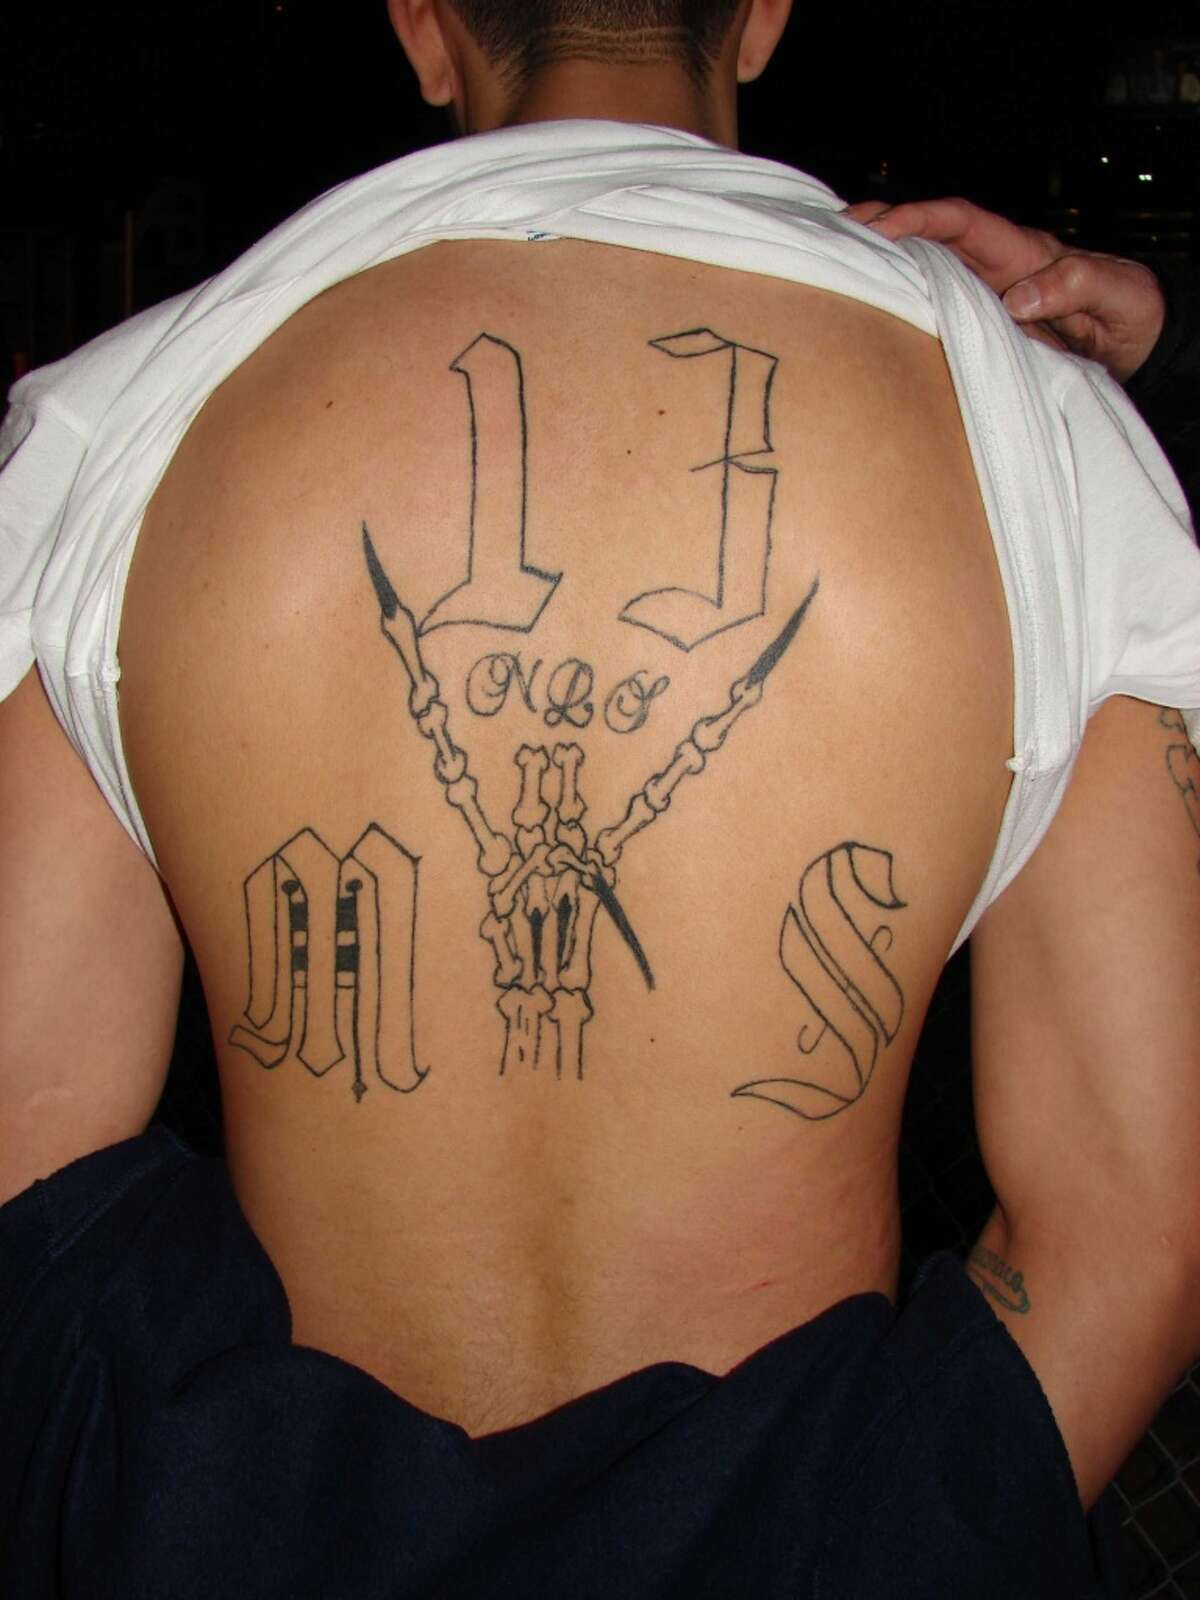 2. The MS13 gang began in Los Angeles in the 1980s as a way for immigrants from El Salvador to protect themselves from predators in the immigrant community there. A MS-13 gang member shows his tattoo identifying him as a member of that gang.